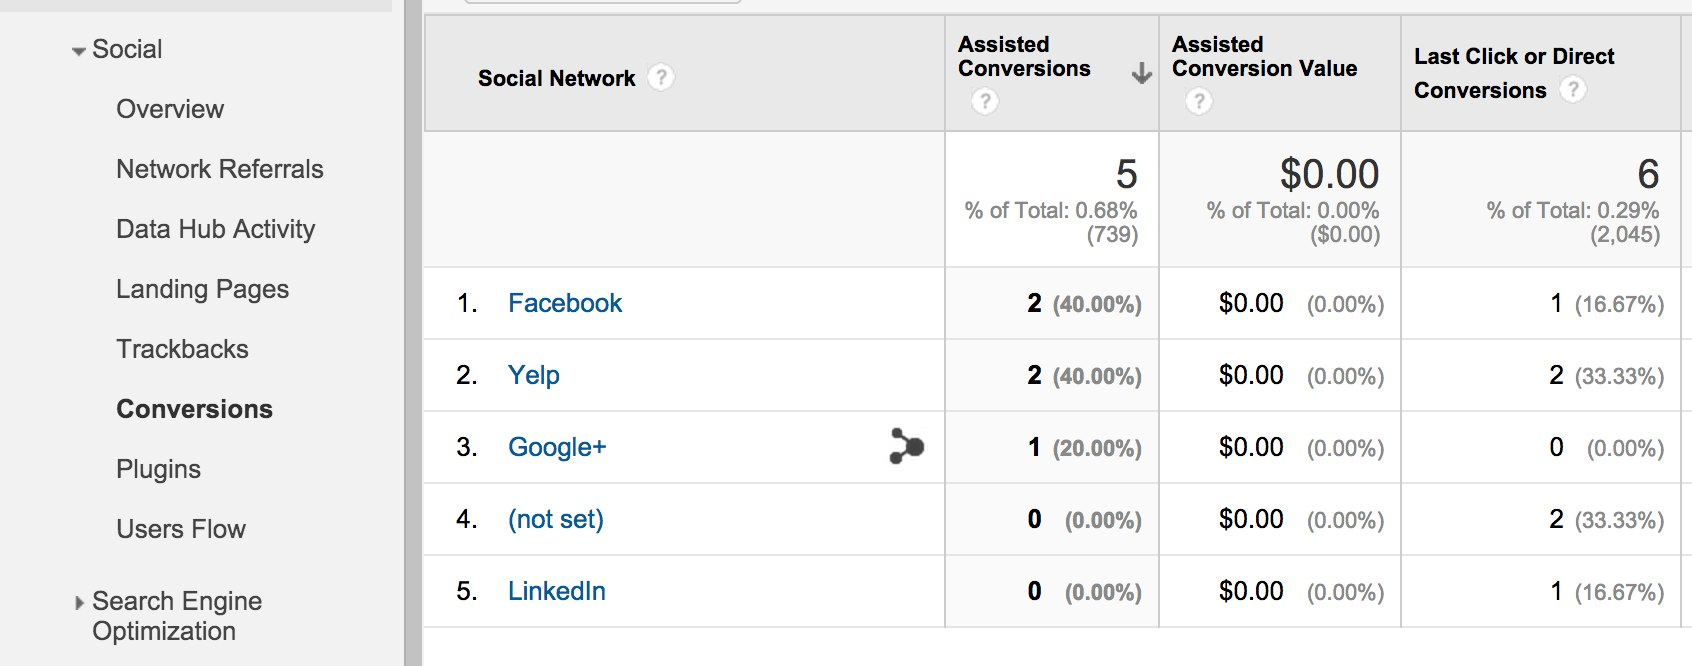 google analytics social network assisted conversions